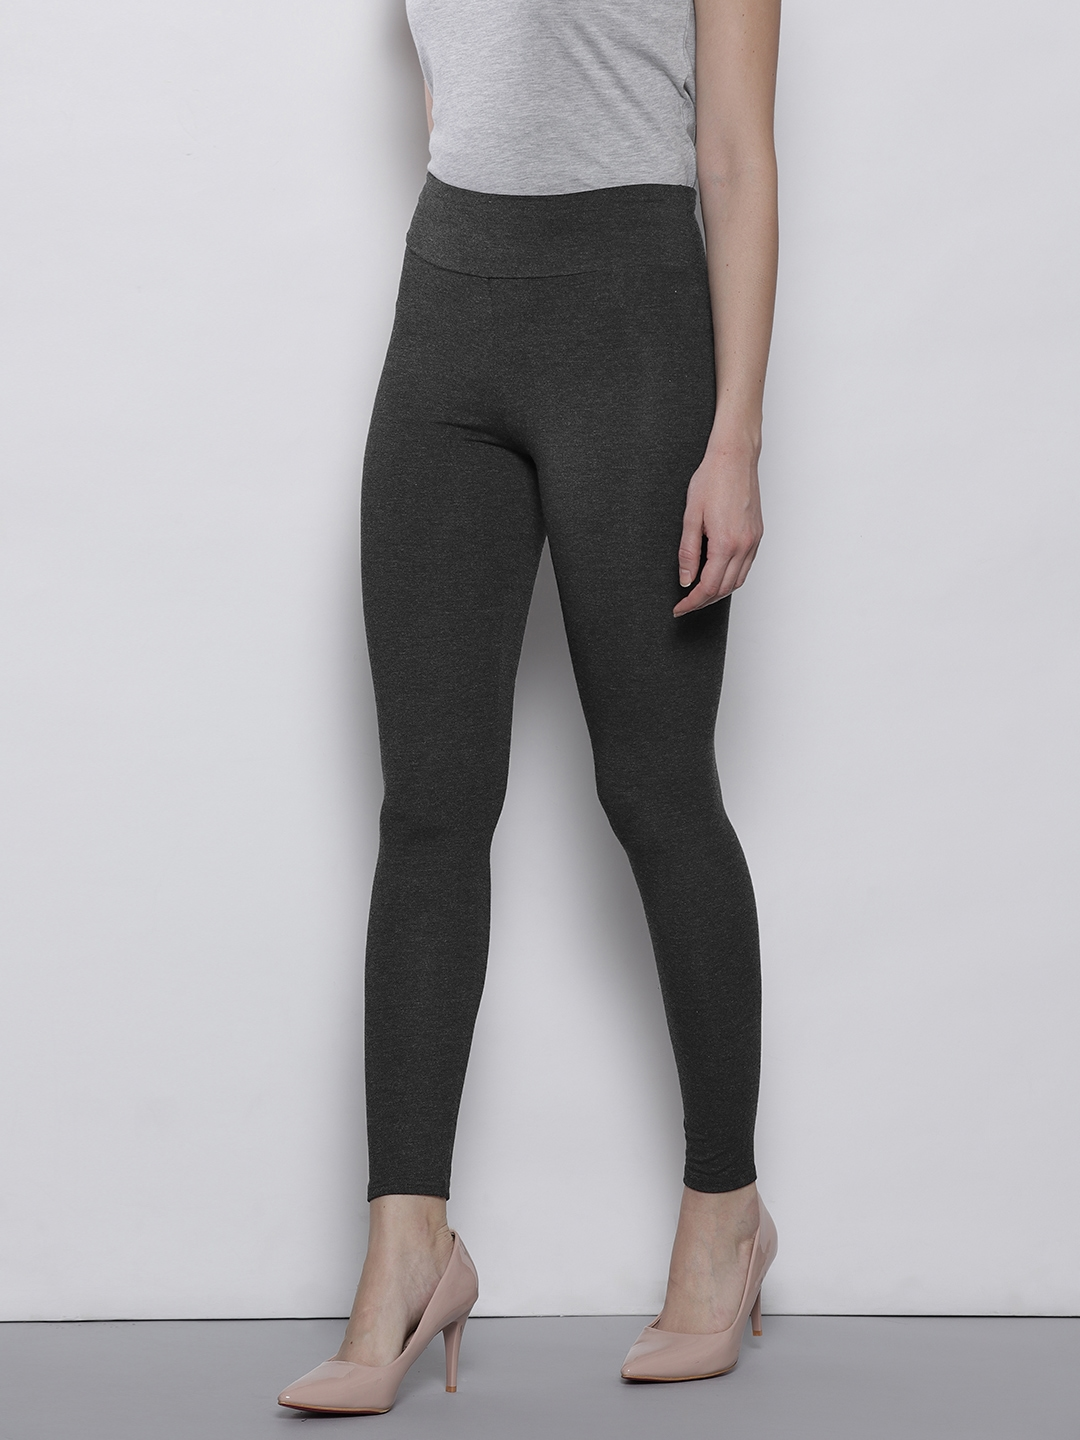 a5f0899f7e Buy DOROTHY PERKINS Charcoal Grey Leggings - Leggings for Women ...